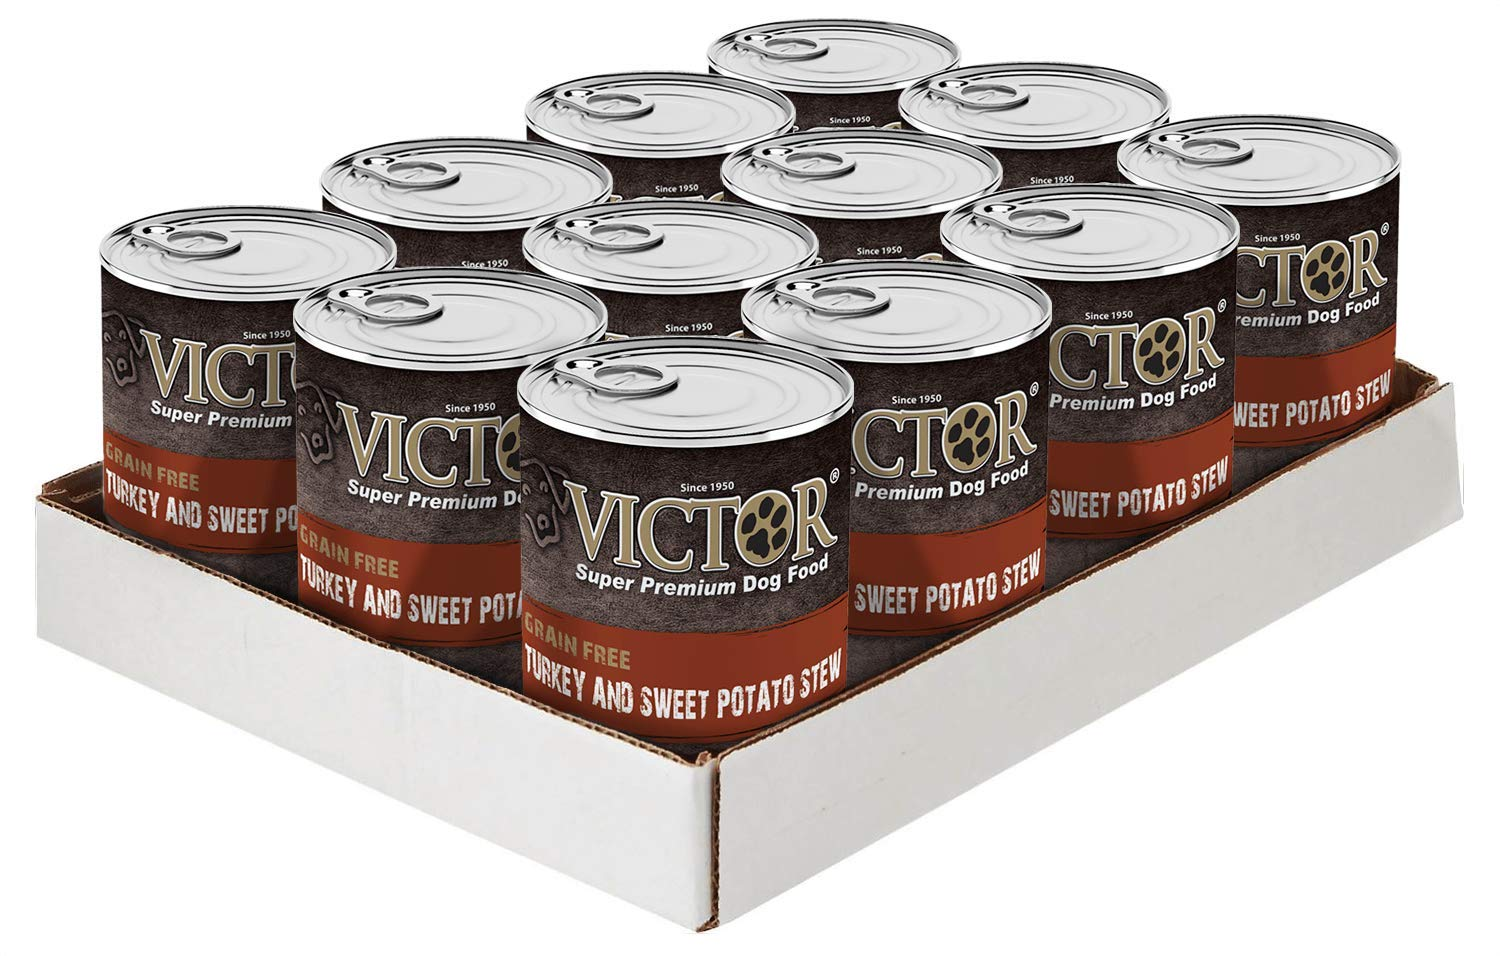 Victor Grain Free Turkey Sweet Potato Stew Dog Food – Canned, 12 13.2 Oz. Cans